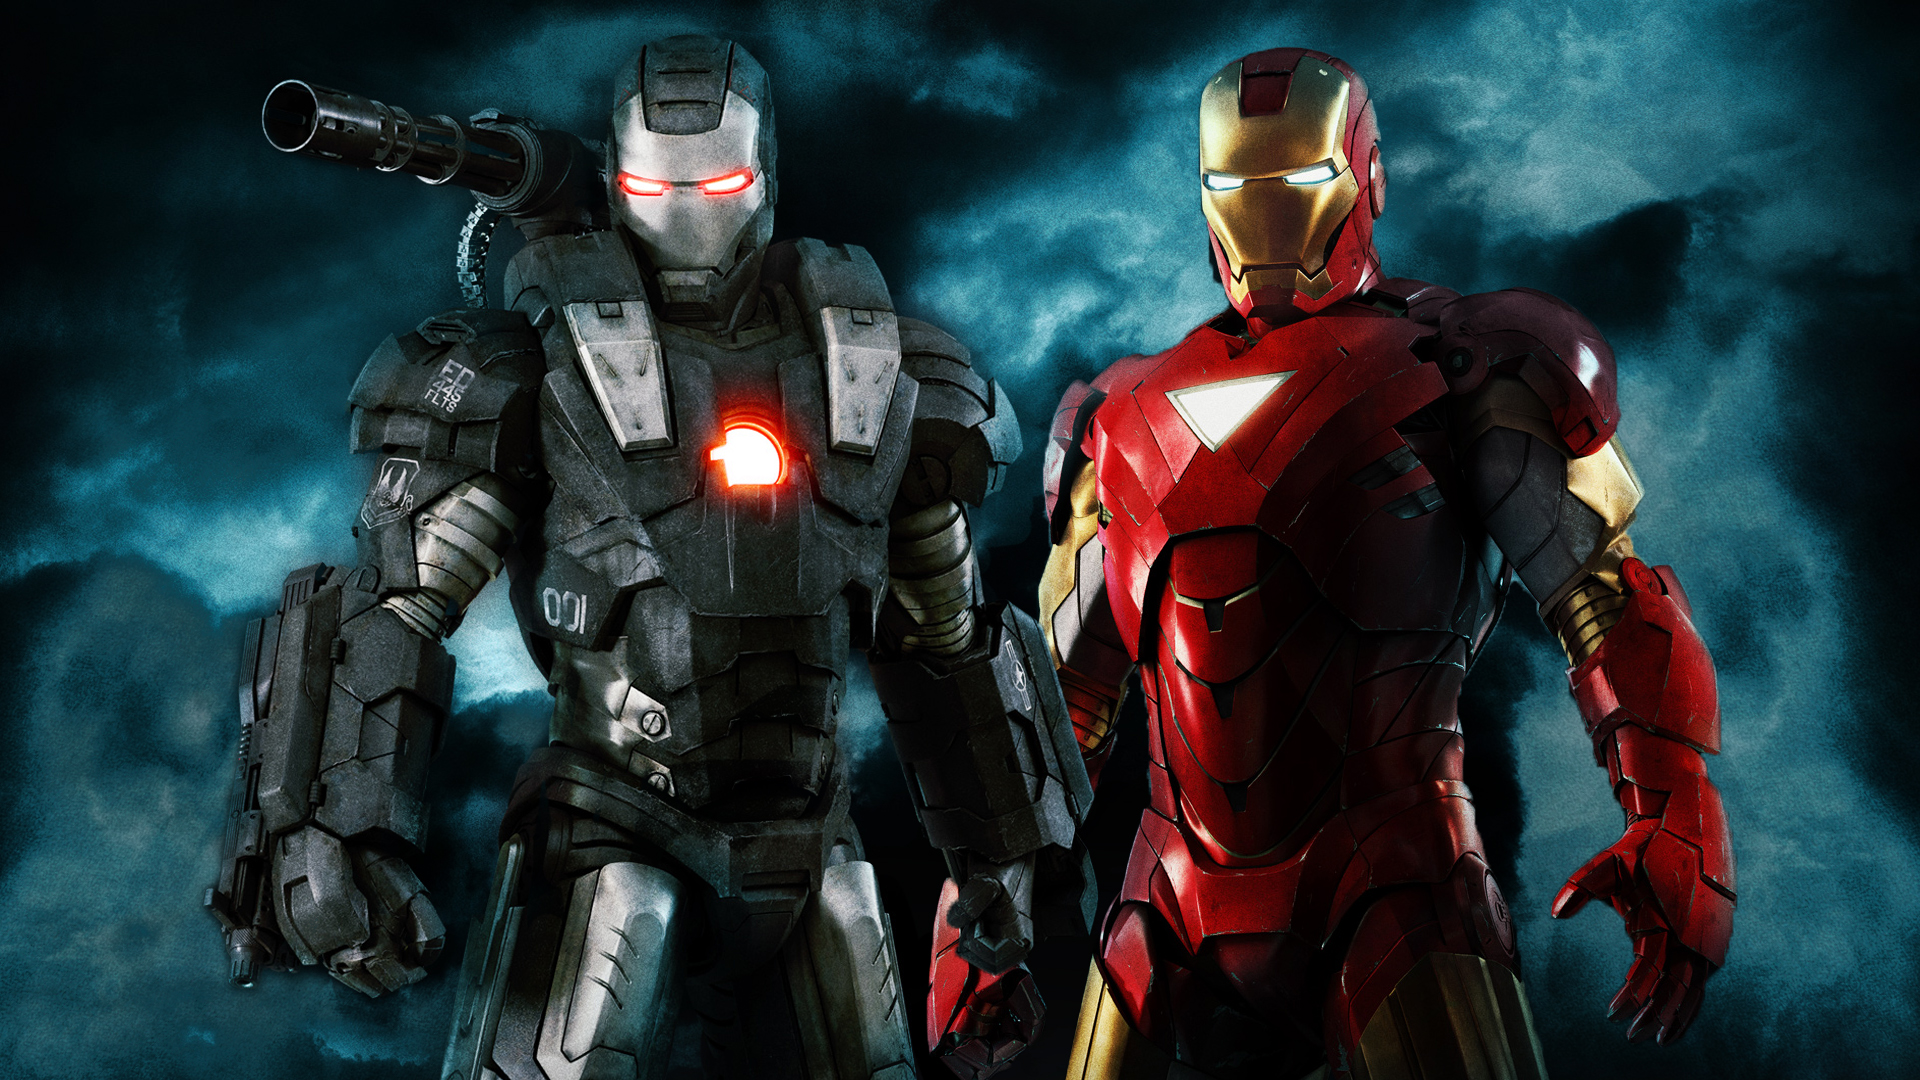 Iron Man Wallpapers Full Hd Desktop Background: Iron Man 2 Wallpapers, Pictures, Images